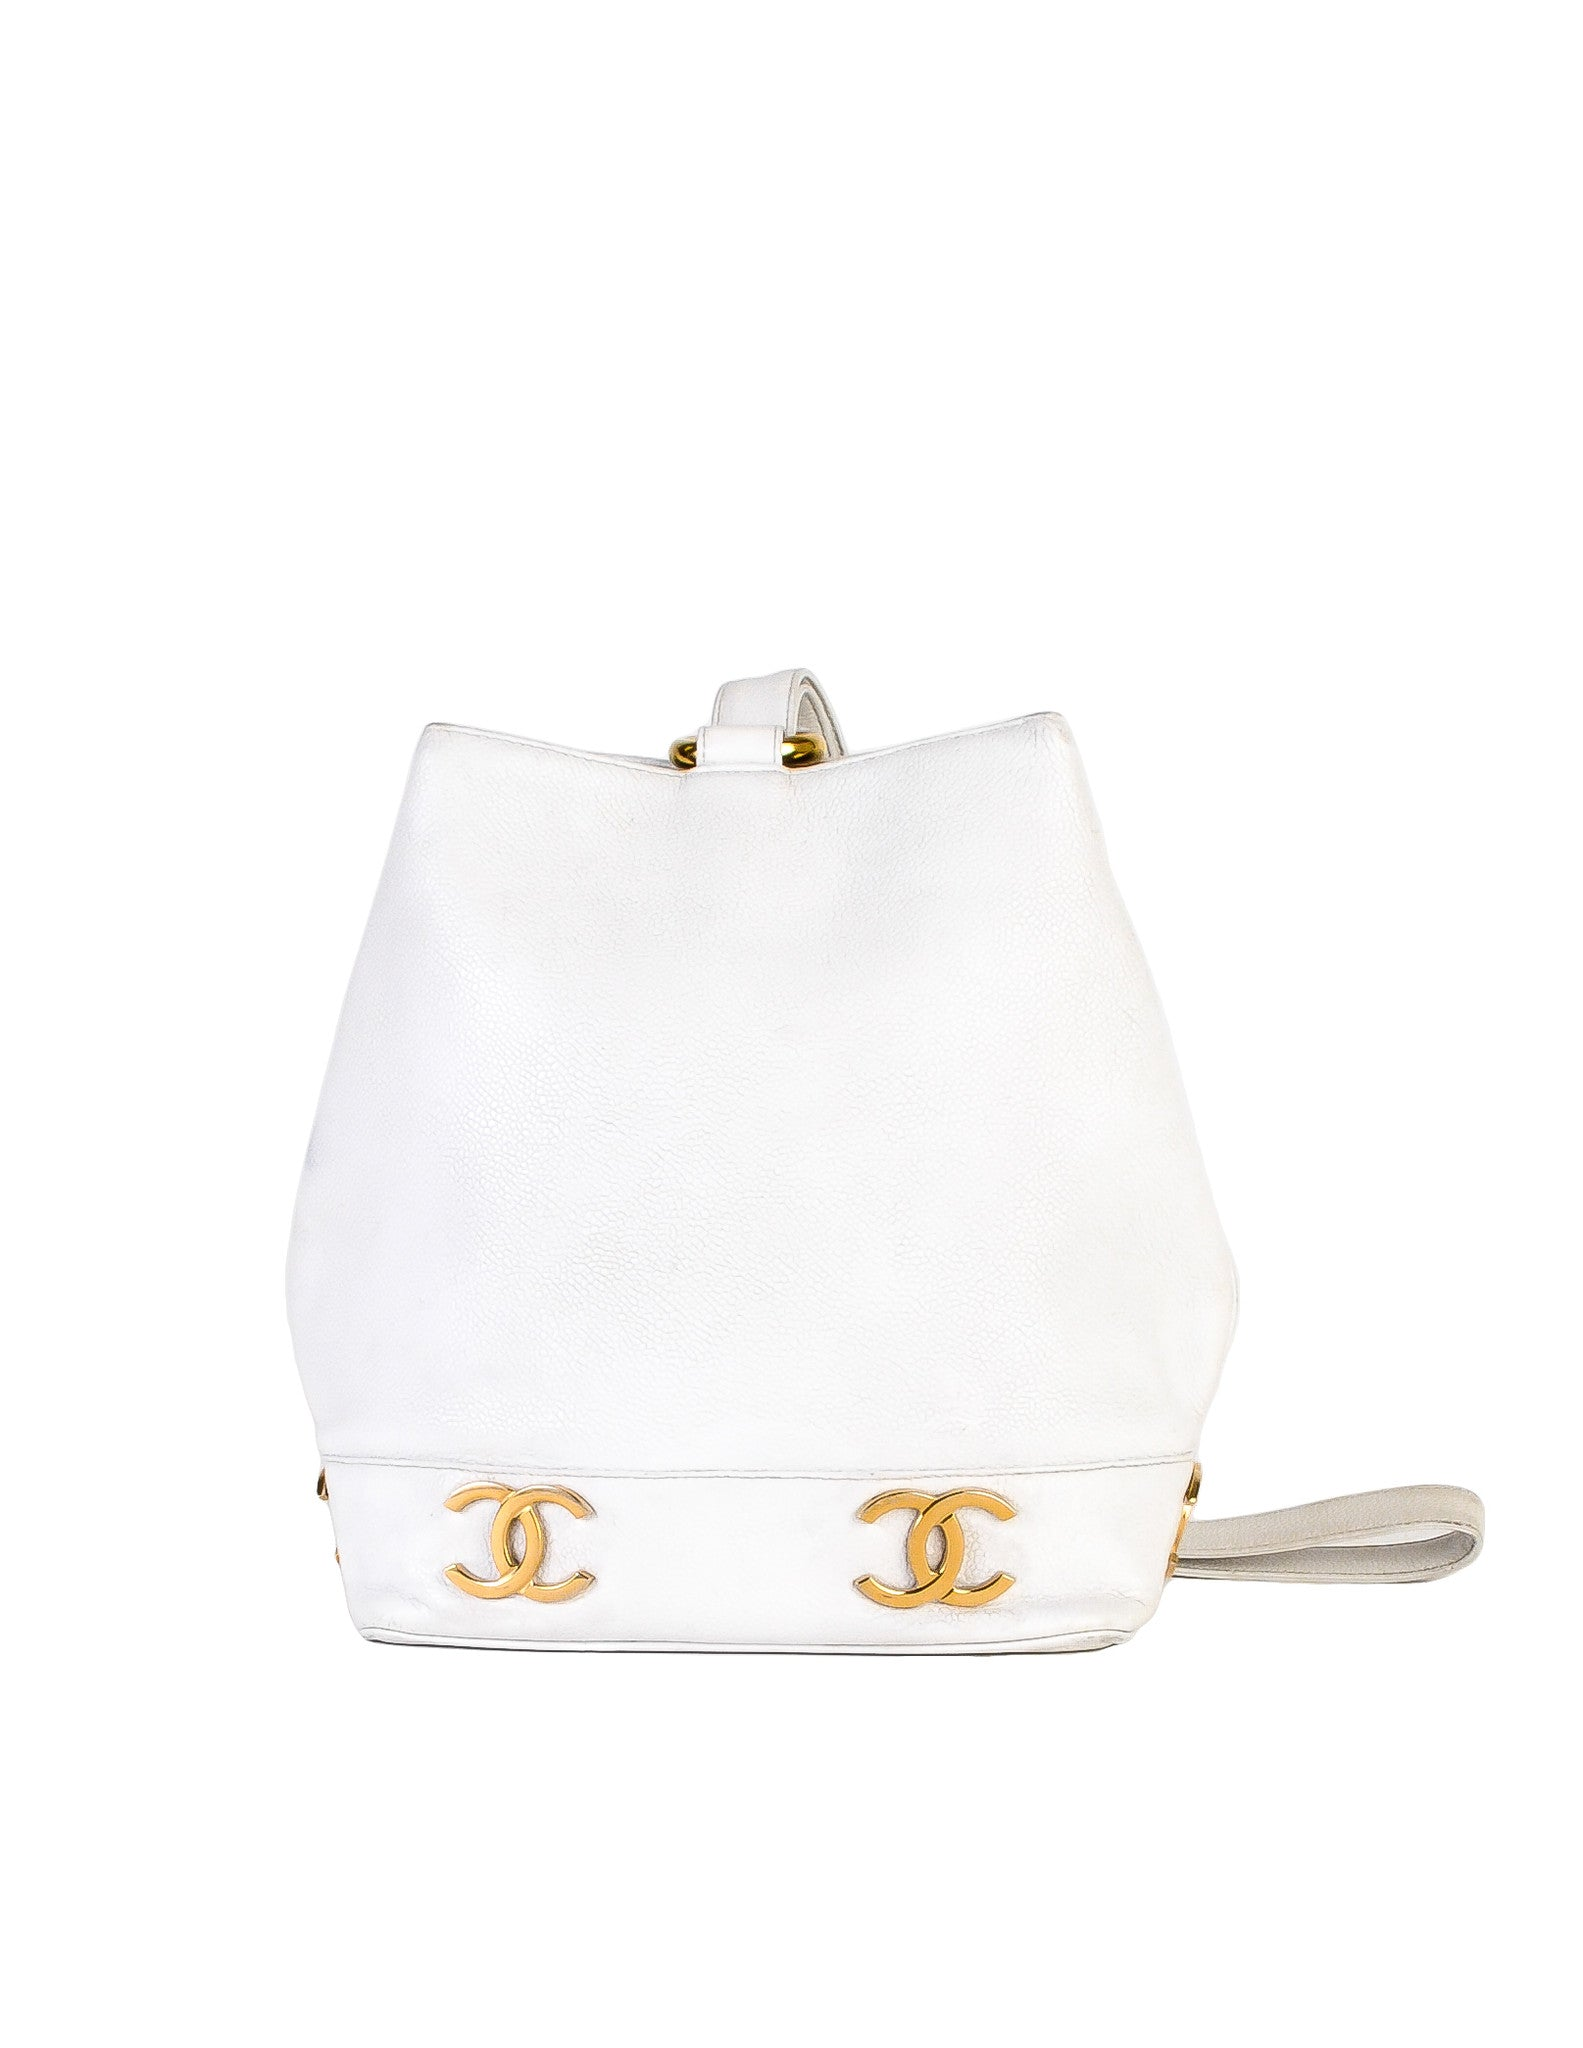 Chanel Vintage White Caviar Bucket Bag - Amarcord Vintage Fashion  - 1